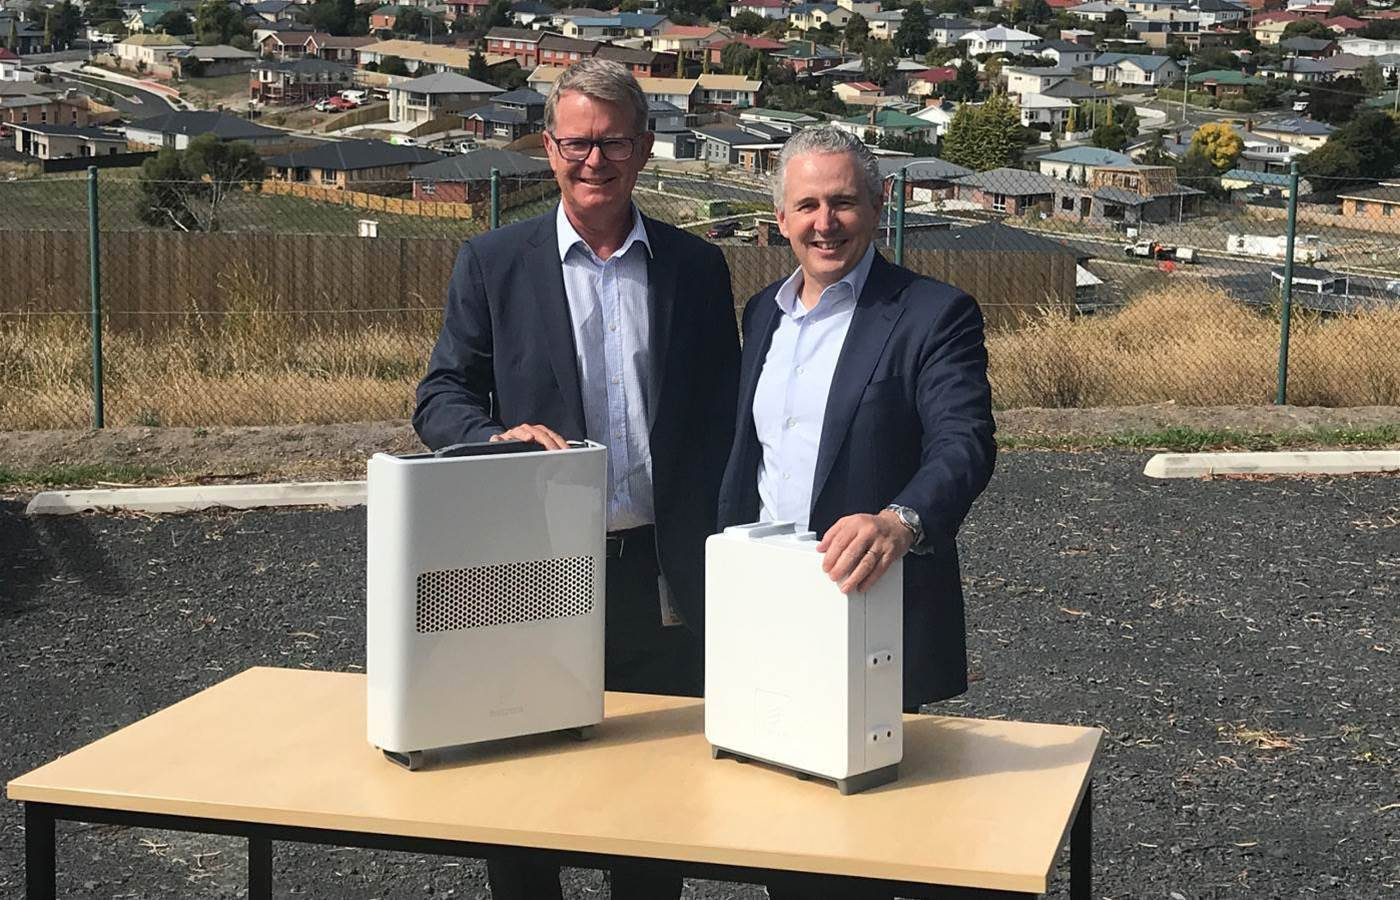 Telstra looks to improve Tasmania's 4G coverage with small cell trials